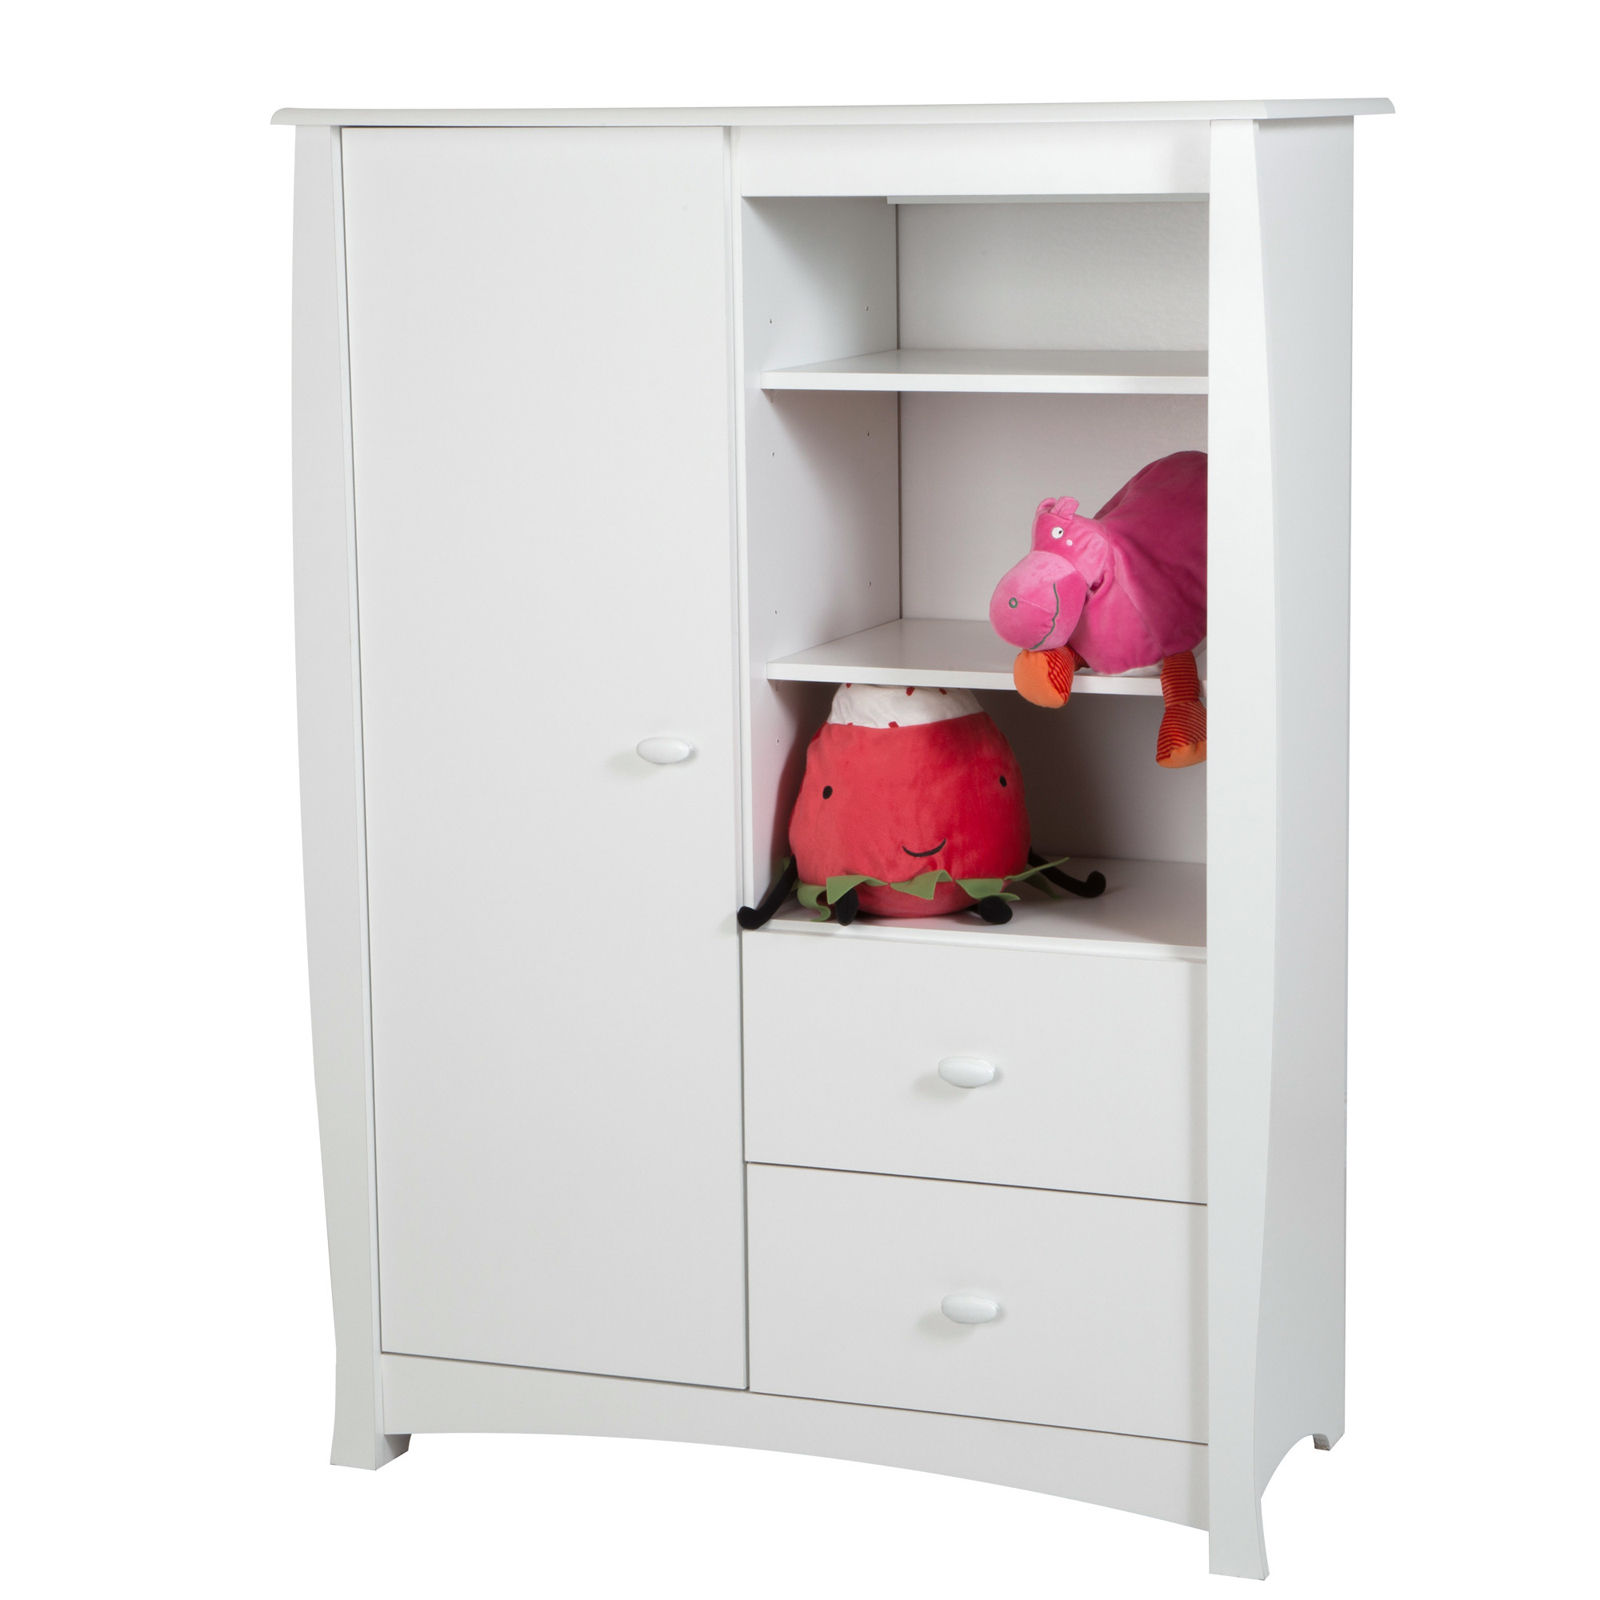 Children's Bedroom Wardrobe Cabinet photo - 1